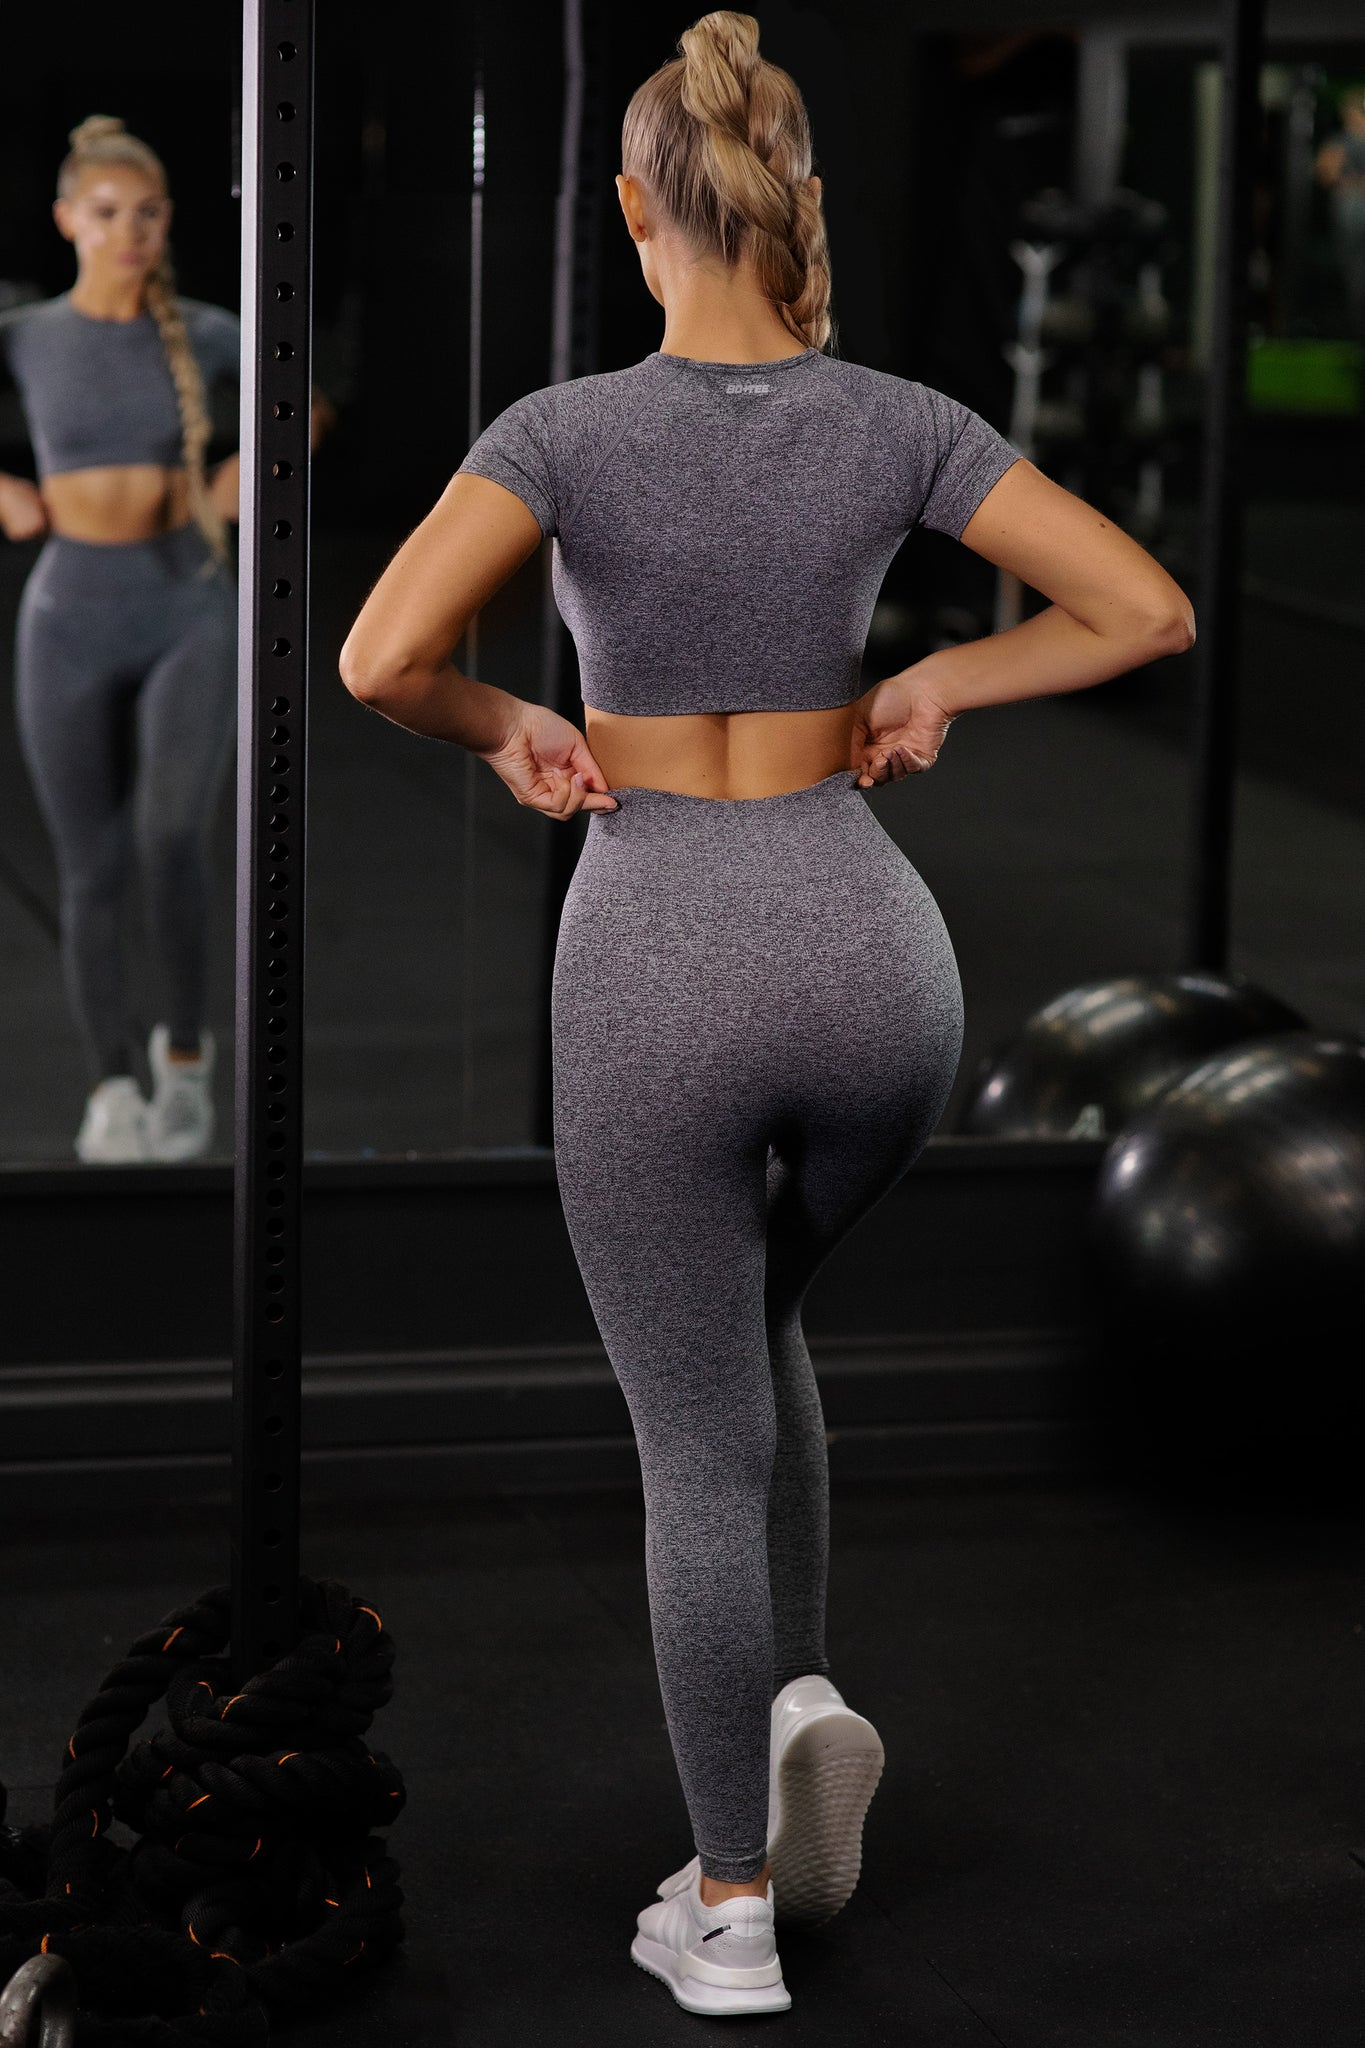 Plain black marl petite seamless high waisted full length gym leggings. Image 3 of 6.